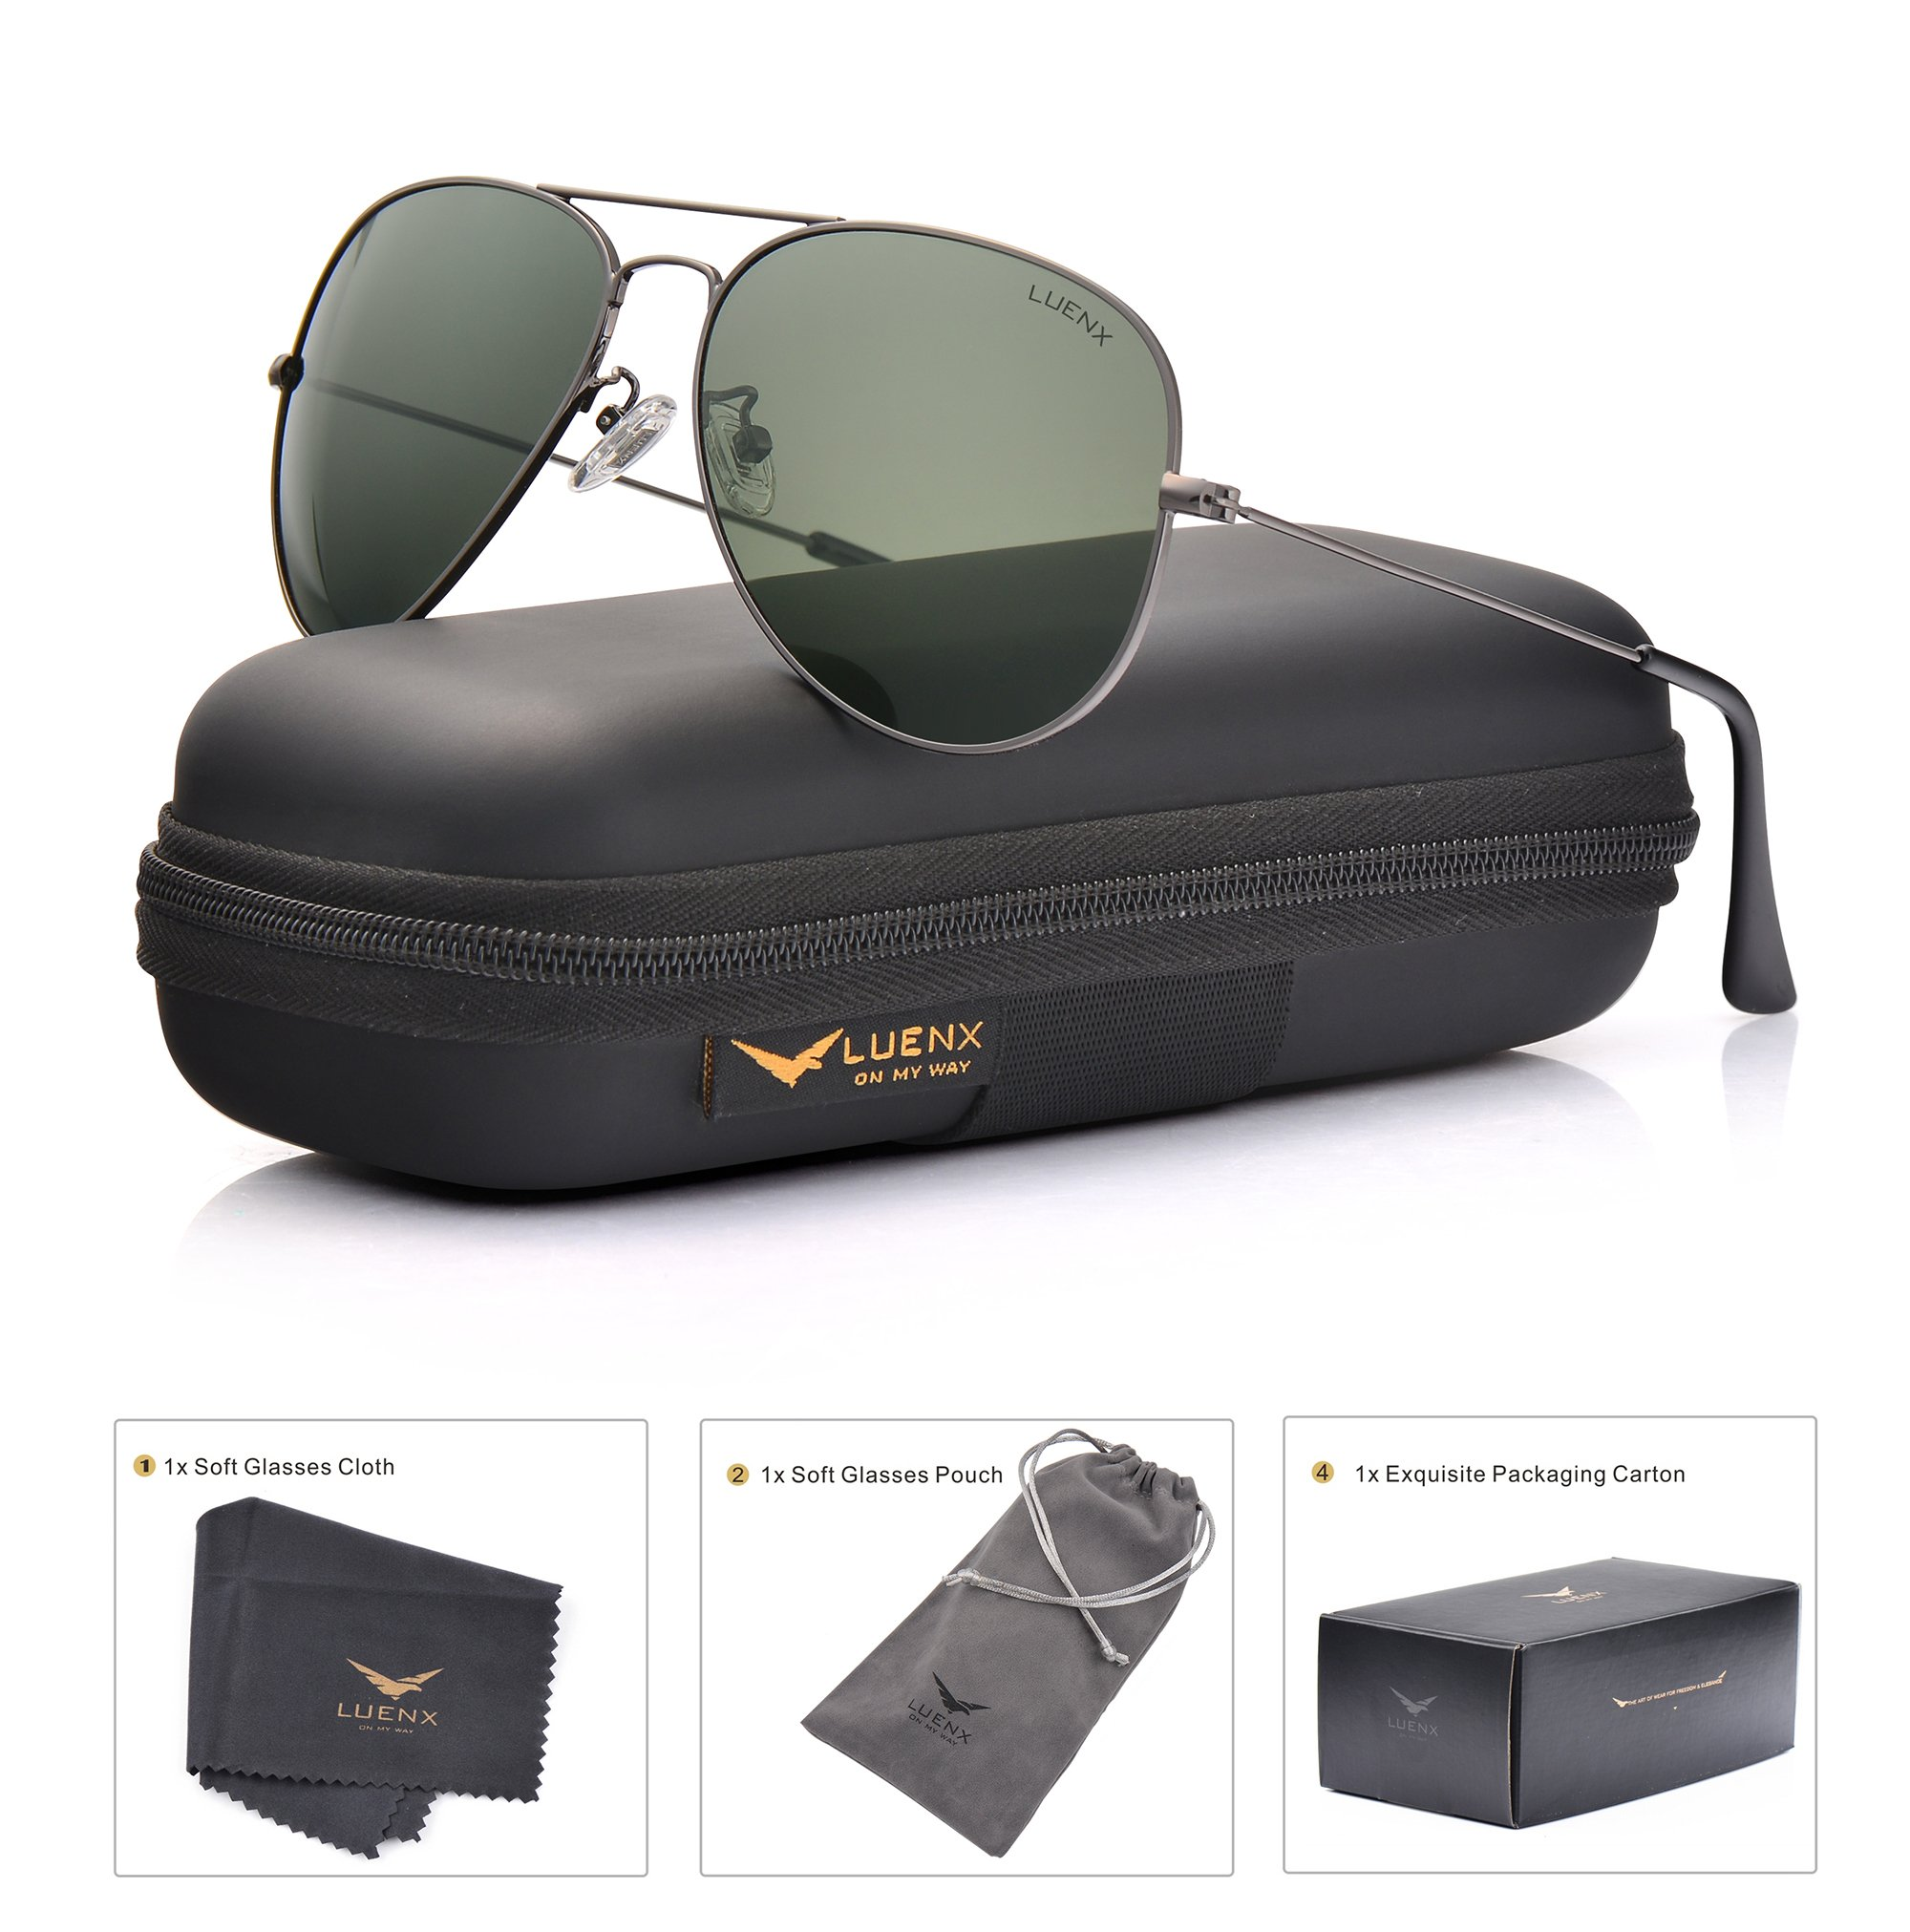 LUENX Men Women Aviator Sunglasses Grey Green Polarized Lens Gun Metal Frame Non-Mirror 60MM with Accessories Classic style by LUENX